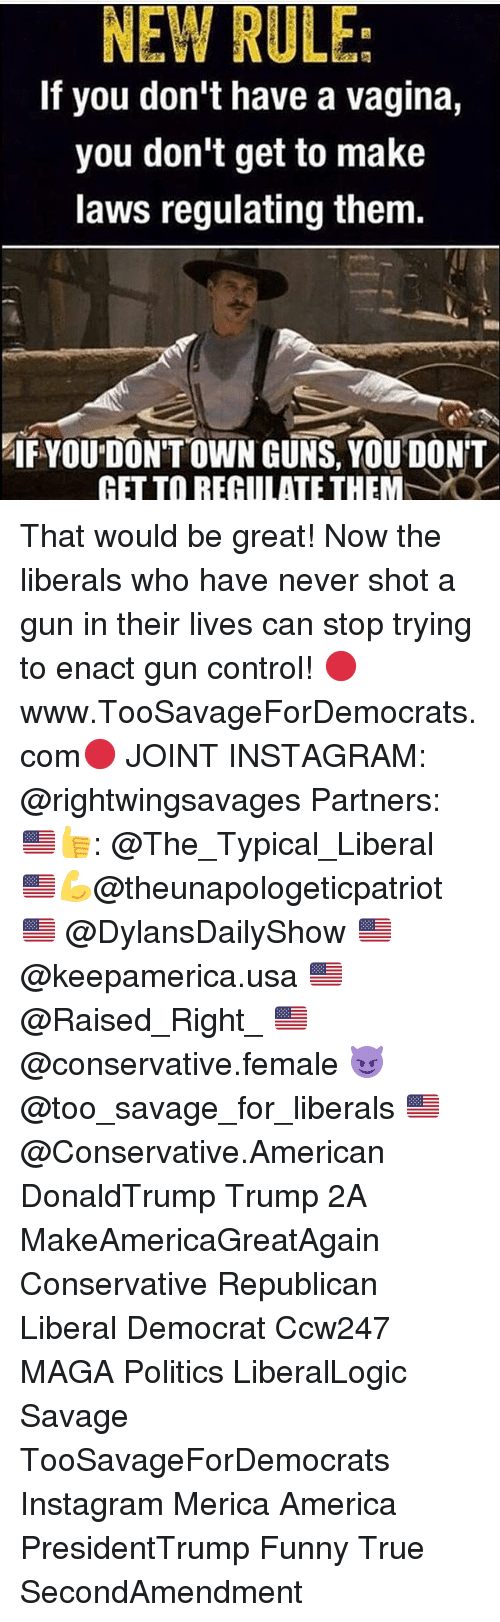 America, Funny, and Guns: NEW RULE  If you don't have a vagina,  you don't get to make  laws regulating them.  IF YOU DON'T OWN GUNS, YOU DON'T  GET TO REGULATE THEM  C That would be great! Now the liberals who have never shot a gun in their lives can stop trying to enact gun control! 🔴www.TooSavageForDemocrats.com🔴 JOINT INSTAGRAM: @rightwingsavages Partners: 🇺🇸👍: @The_Typical_Liberal 🇺🇸💪@theunapologeticpatriot 🇺🇸 @DylansDailyShow 🇺🇸 @keepamerica.usa 🇺🇸@Raised_Right_ 🇺🇸@conservative.female 😈 @too_savage_for_liberals 🇺🇸 @Conservative.American DonaldTrump Trump 2A MakeAmericaGreatAgain Conservative Republican Liberal Democrat Ccw247 MAGA Politics LiberalLogic Savage TooSavageForDemocrats Instagram Merica America PresidentTrump Funny True SecondAmendment